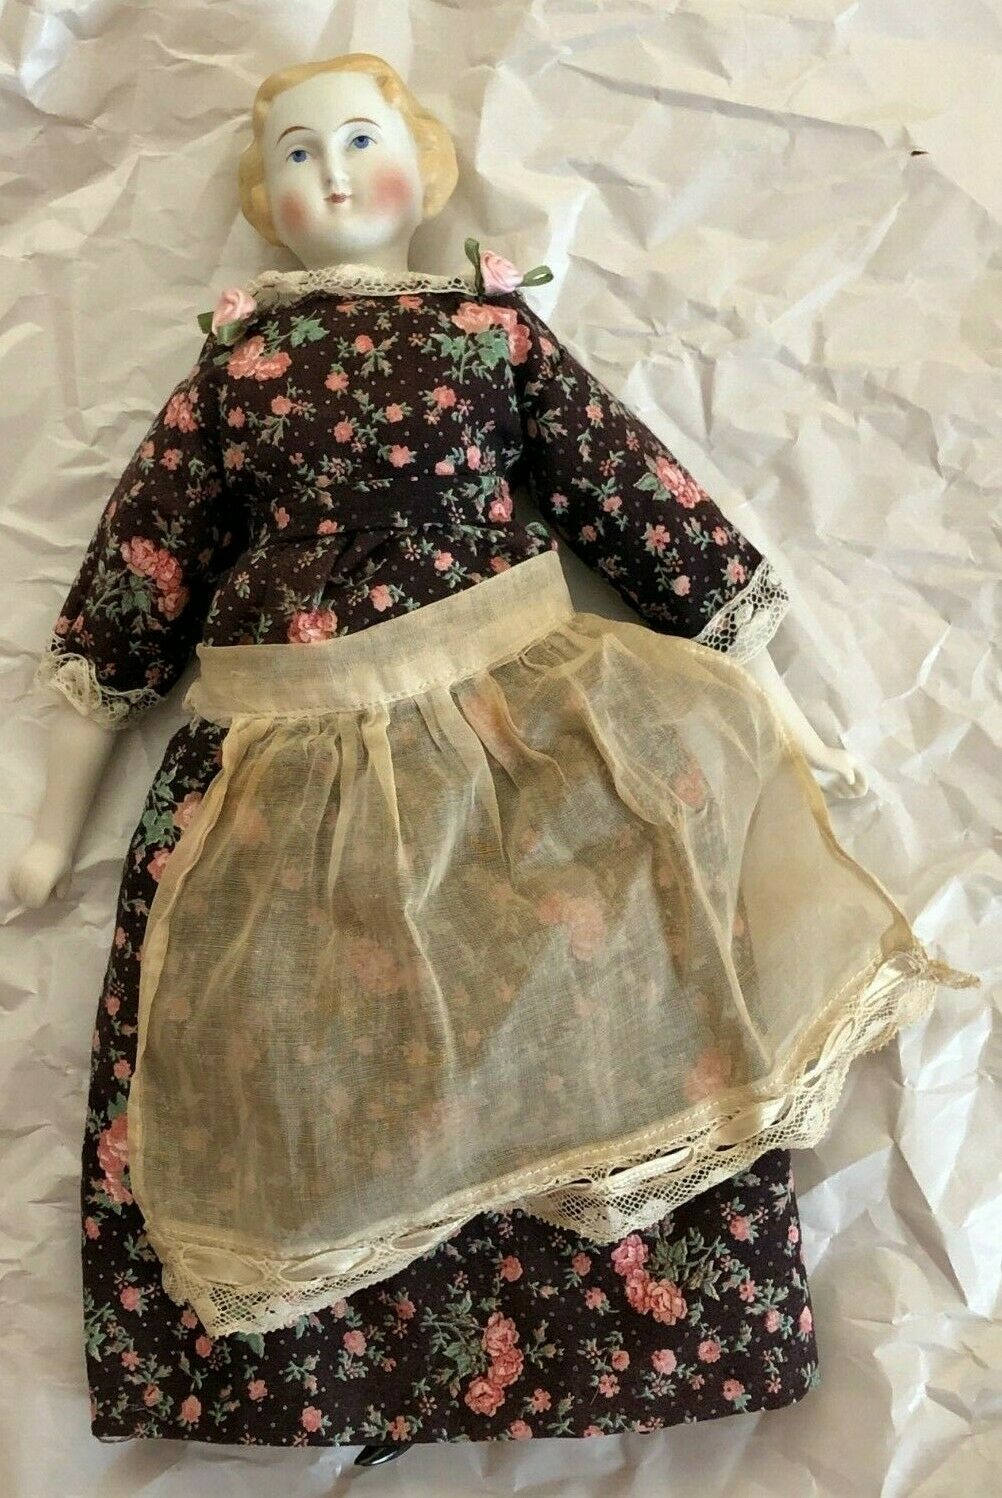 VINTAGE PORCELAIN HEAD LOWER LEGS AND LOWER ARMS AND CLOTH DOLL WITH APRON